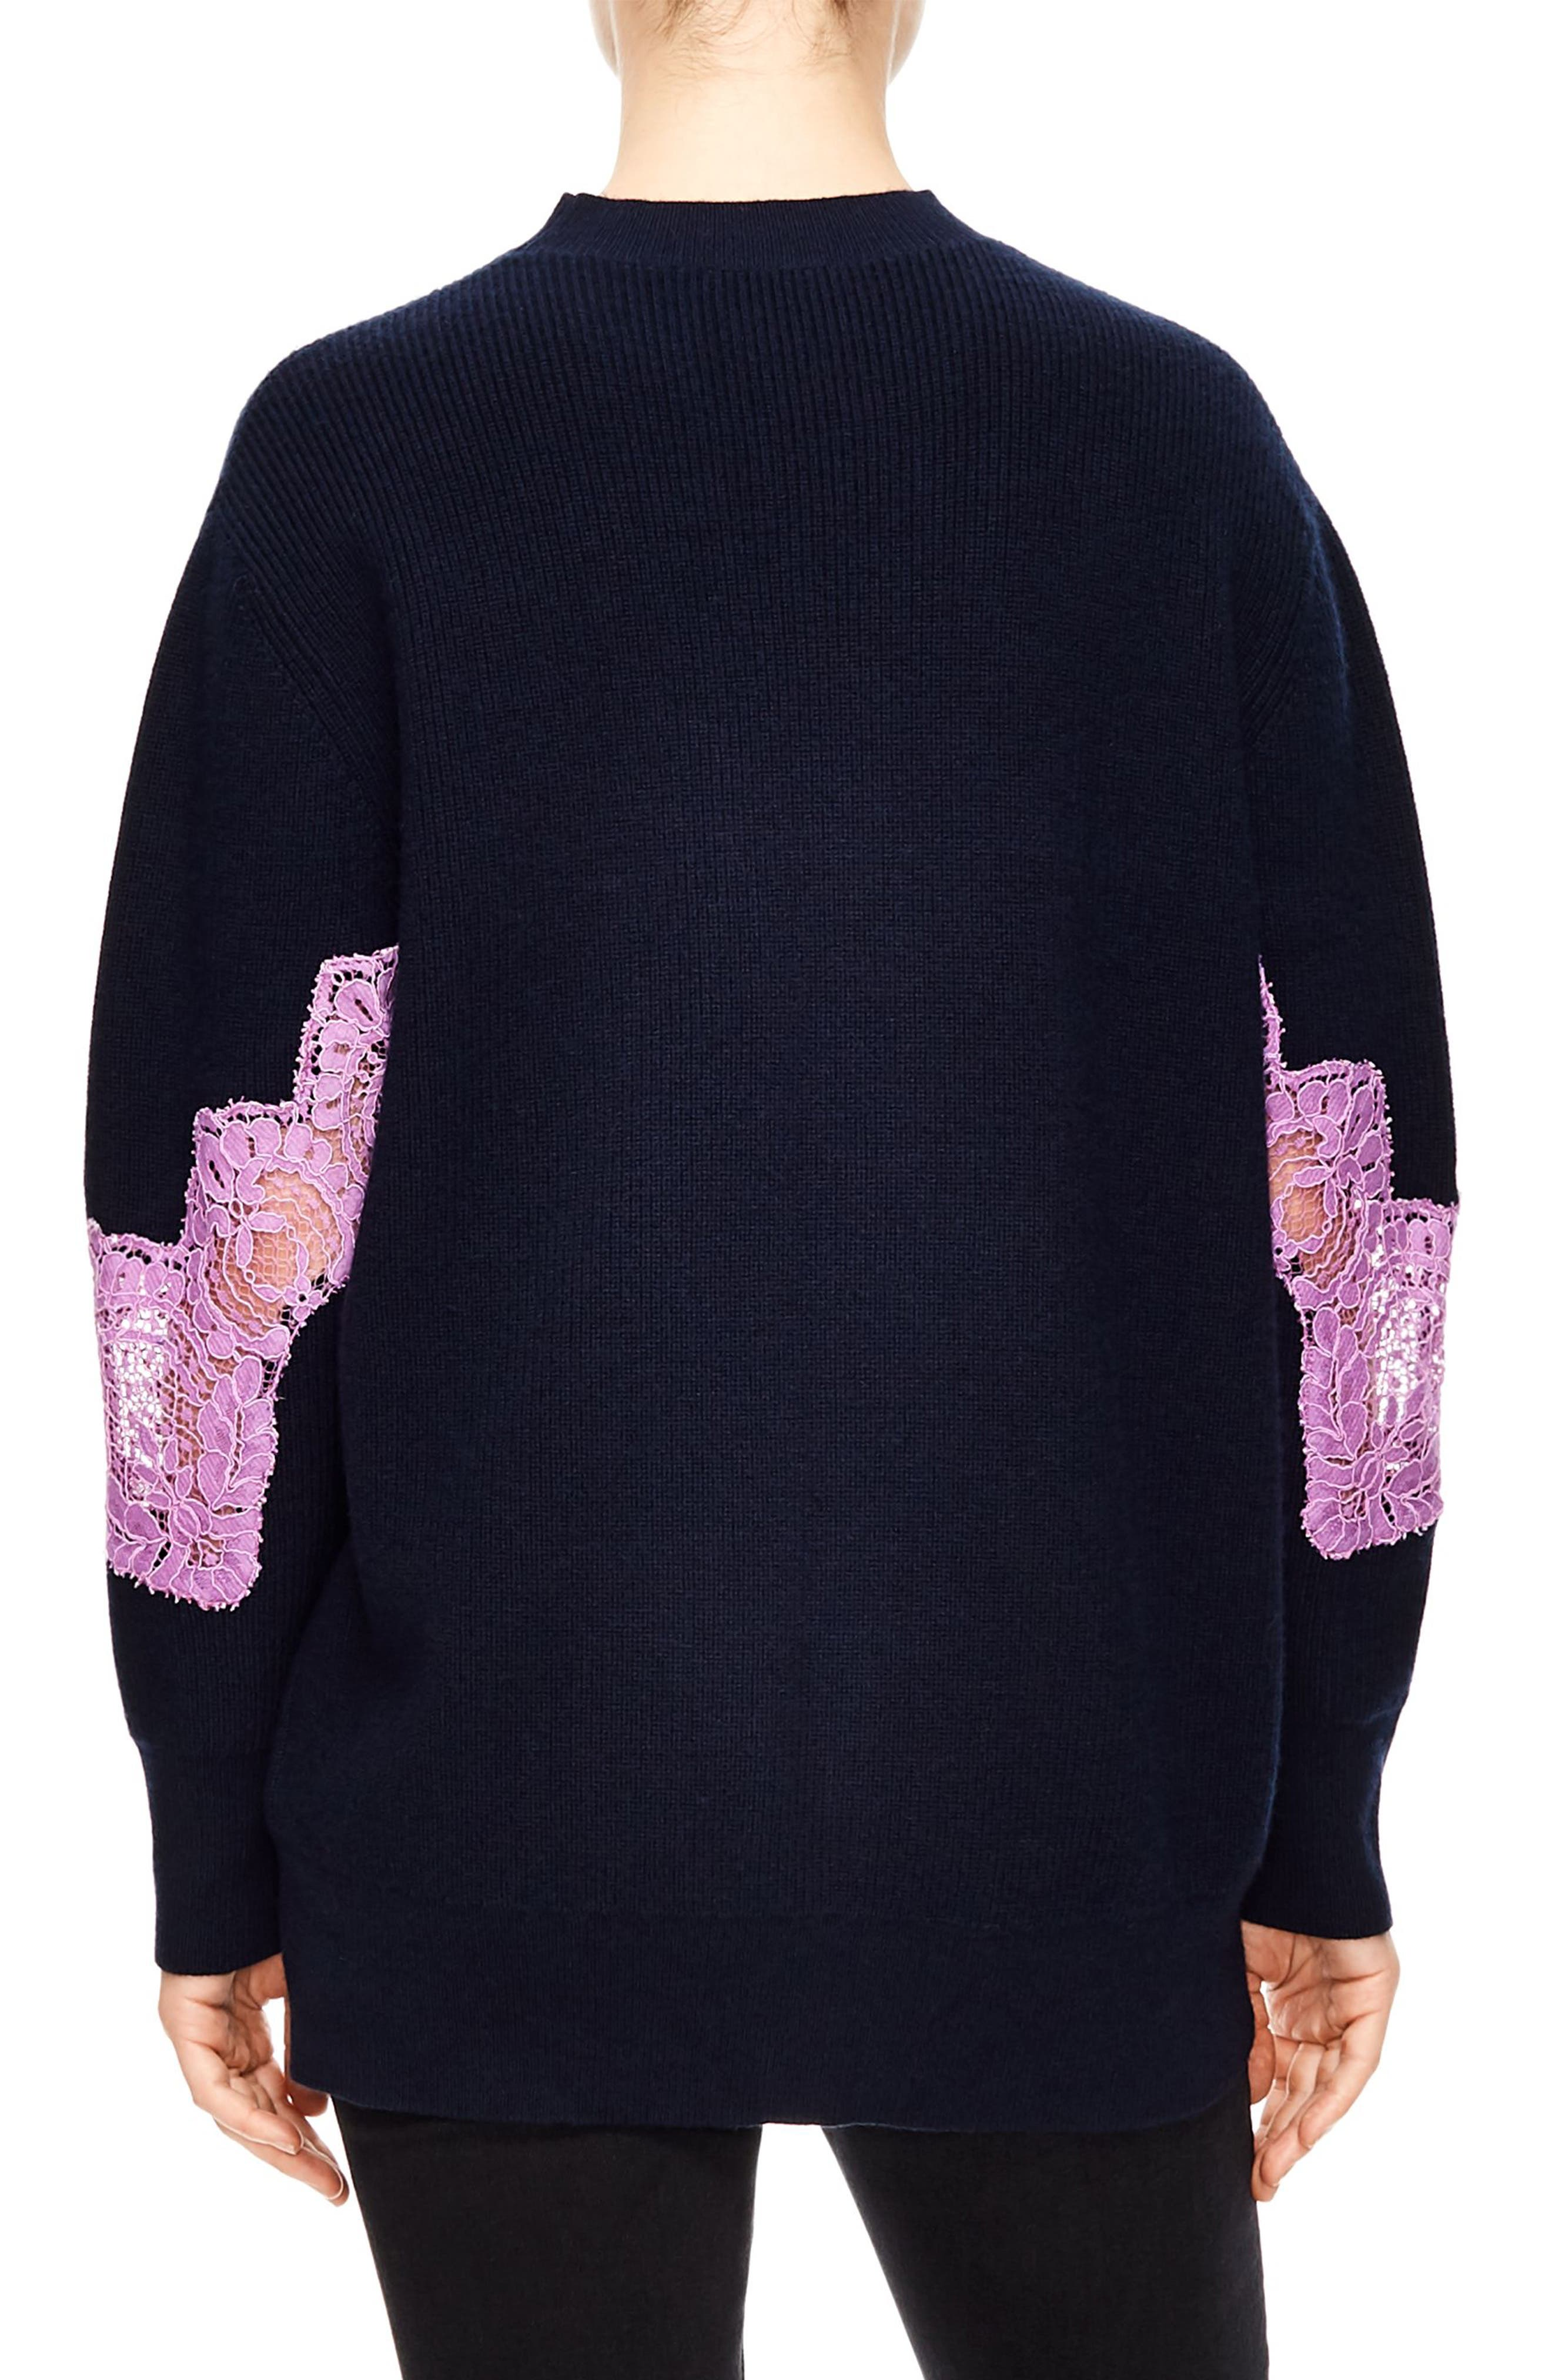 Lace Detail Sweater,                             Alternate thumbnail 2, color,                             DEEP NAVY